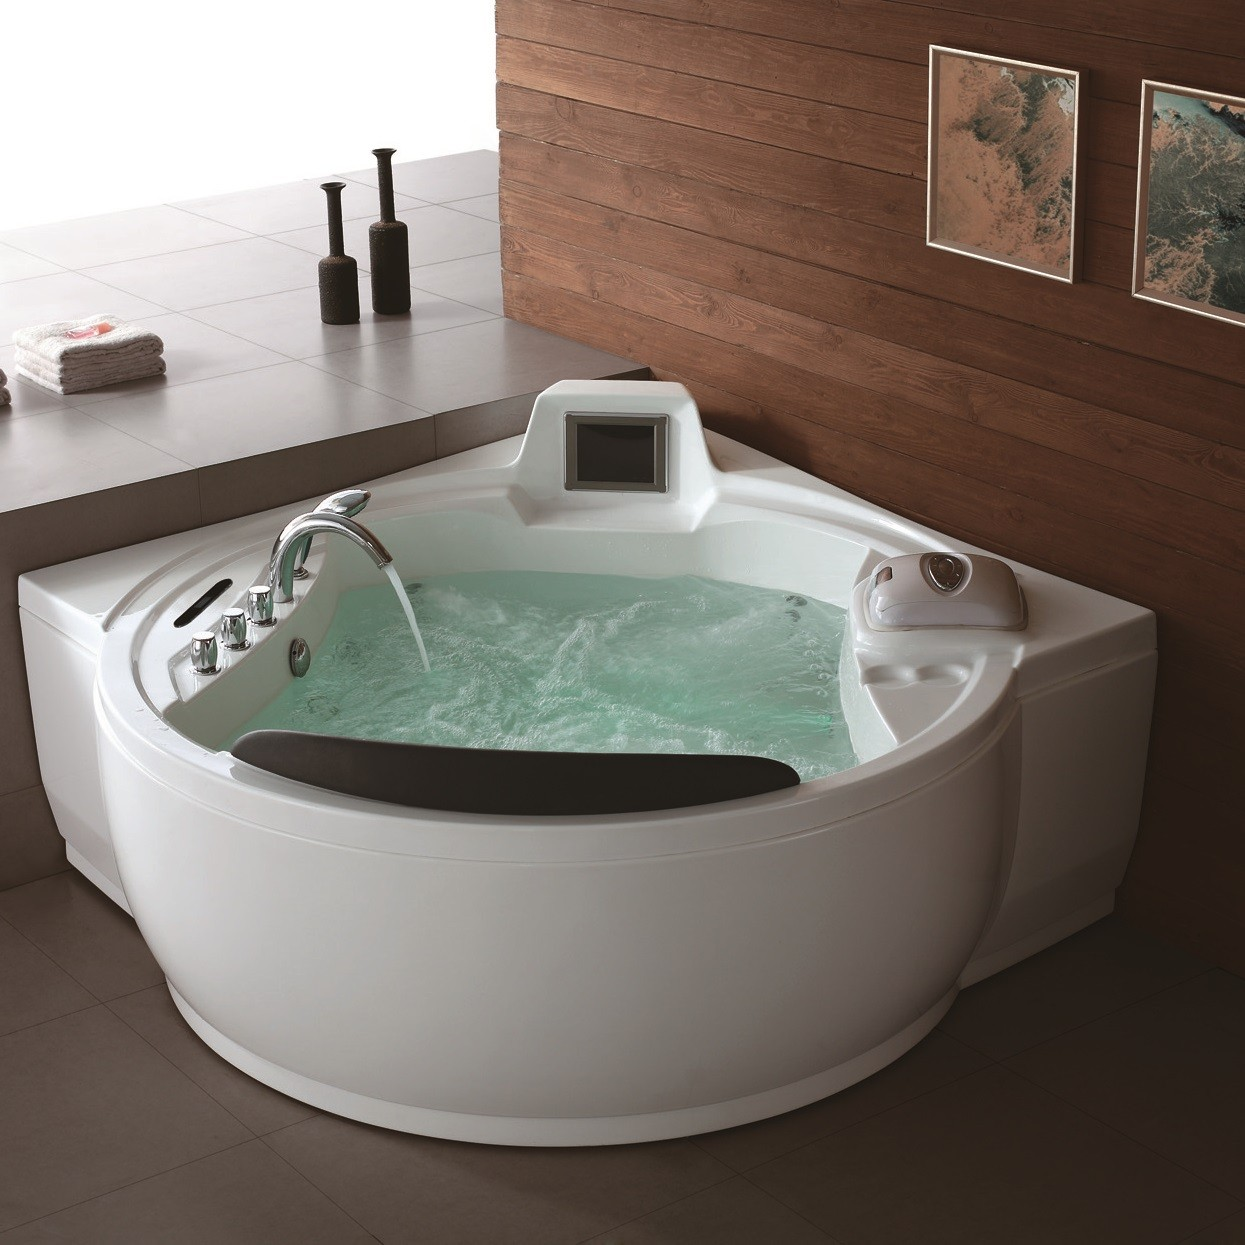 Chakuzi Freeport Whirlpool Tub